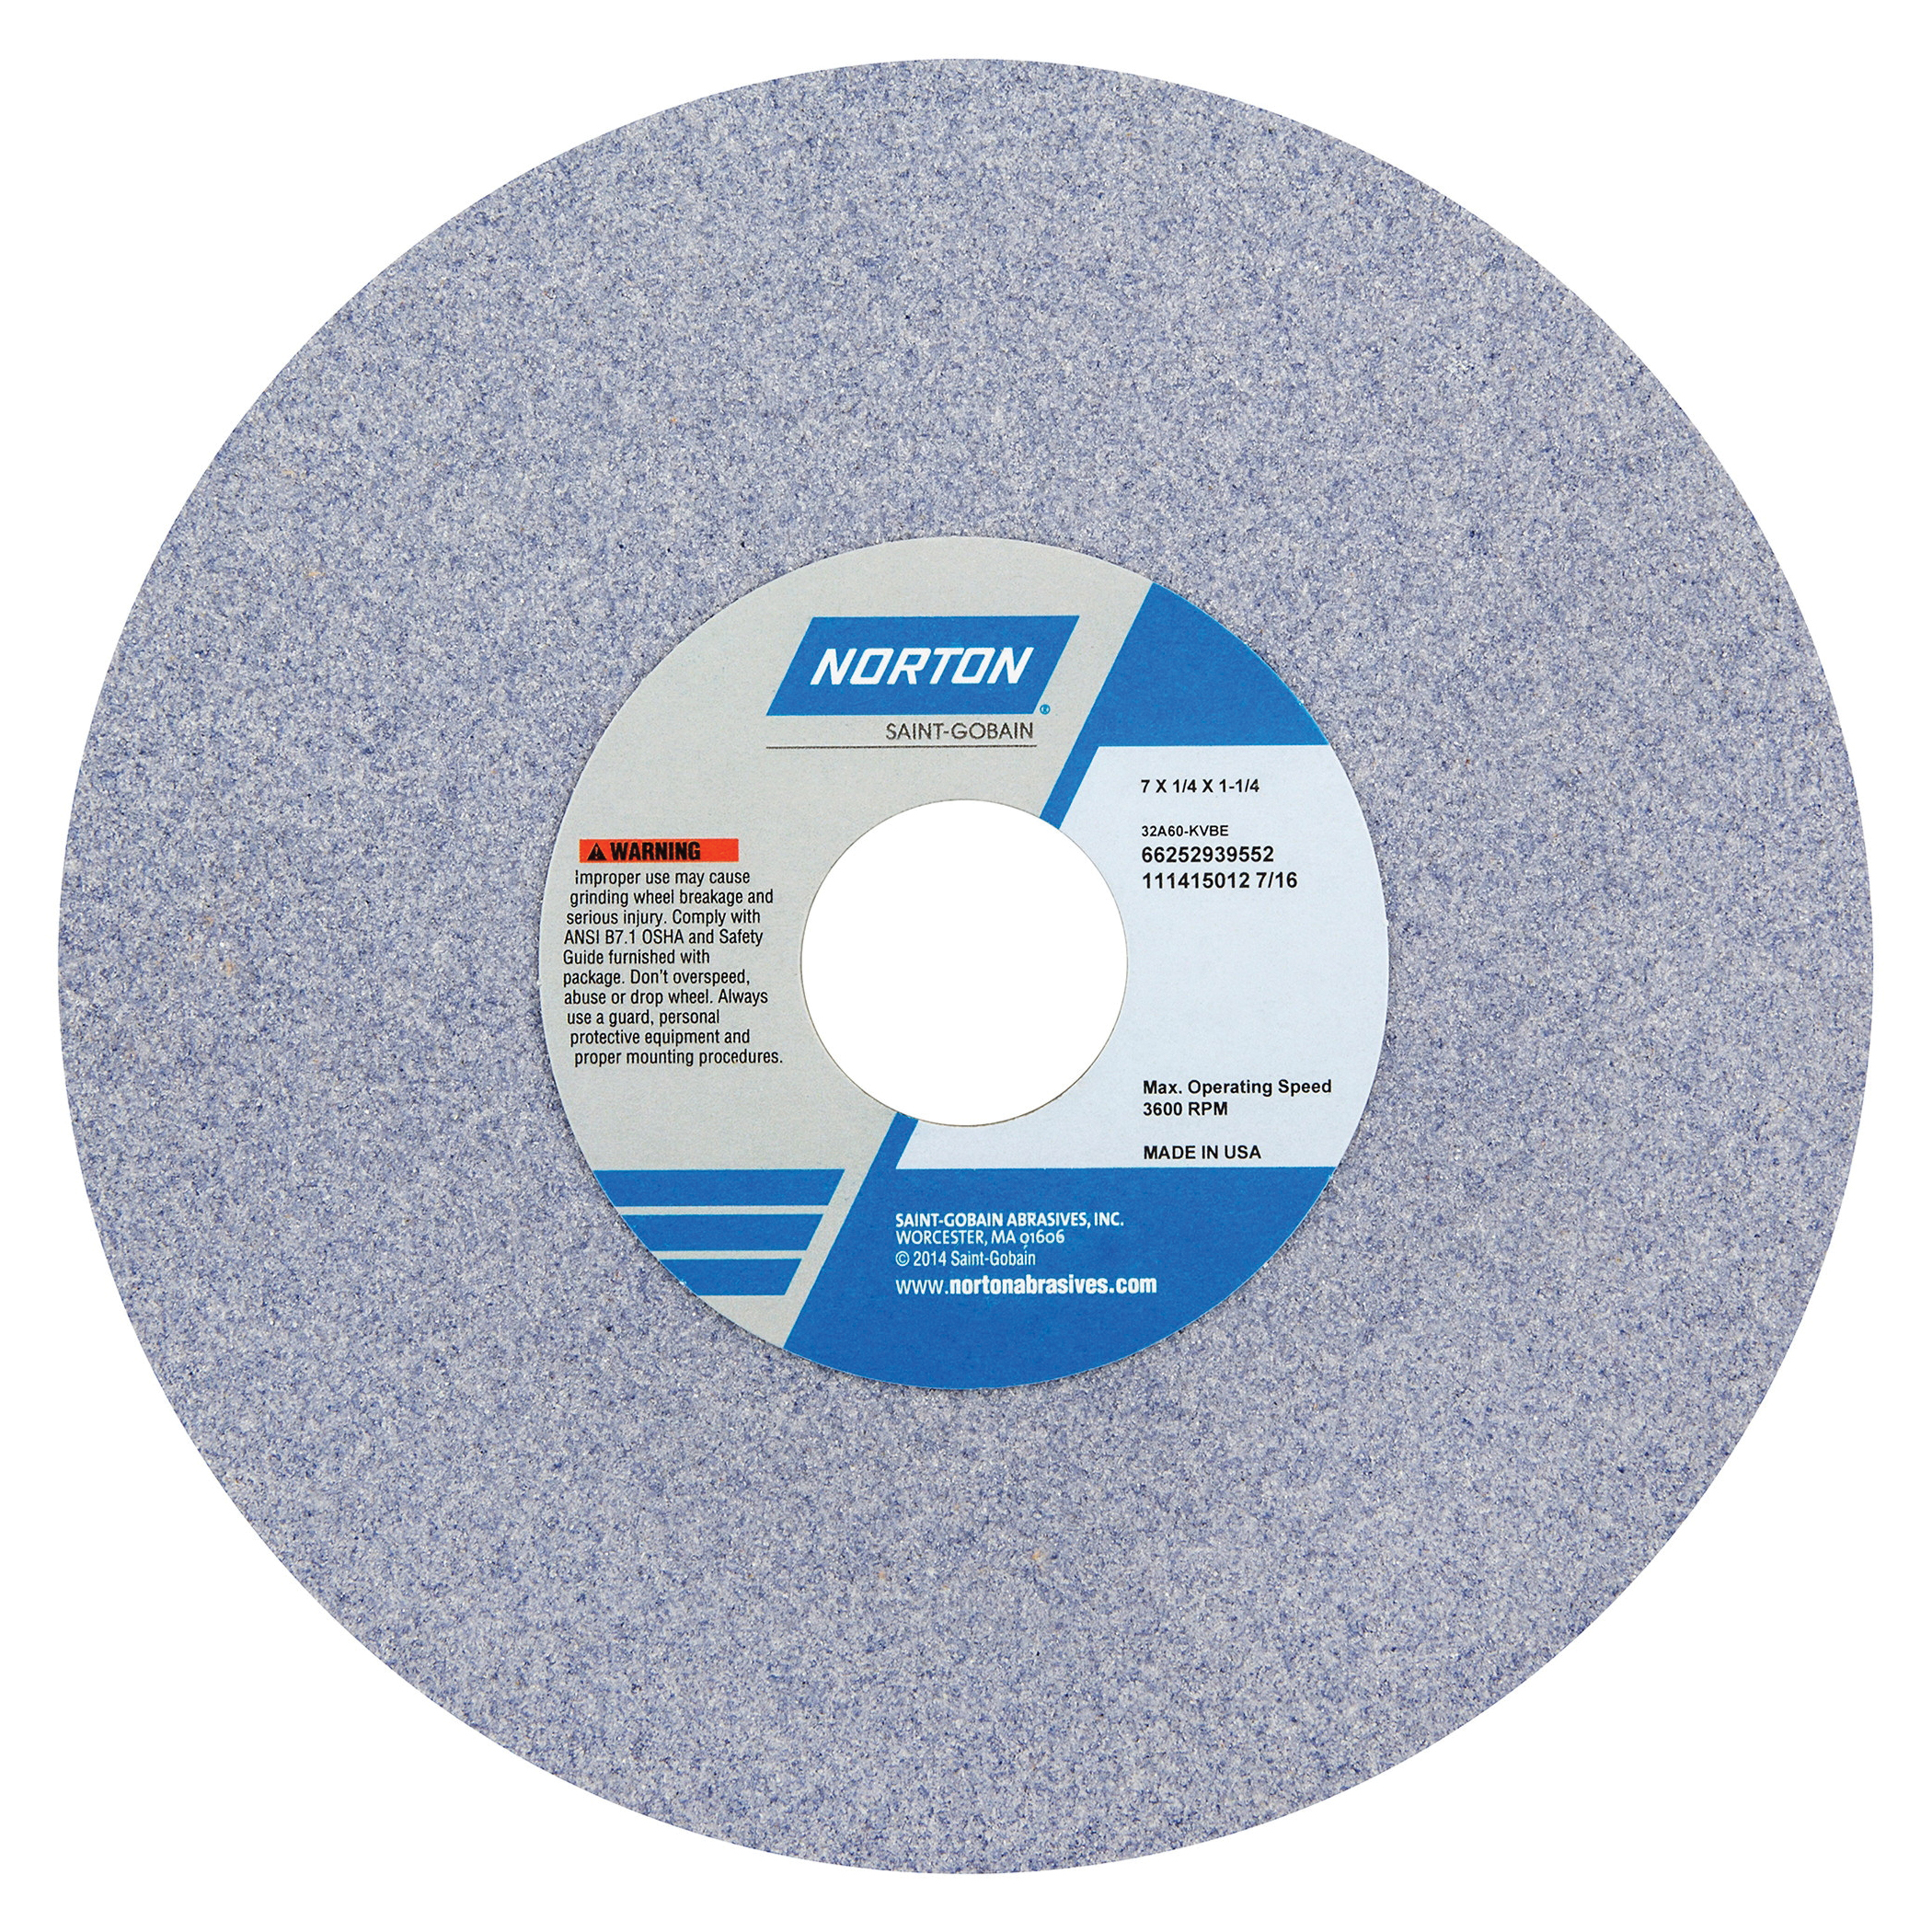 Norton® 66252939670 32A Straight Toolroom Wheel, 7 in Dia x 1/4 in THK, 1-1/4 in Center Hole, 100 Grit, Aluminum Oxide Abrasive